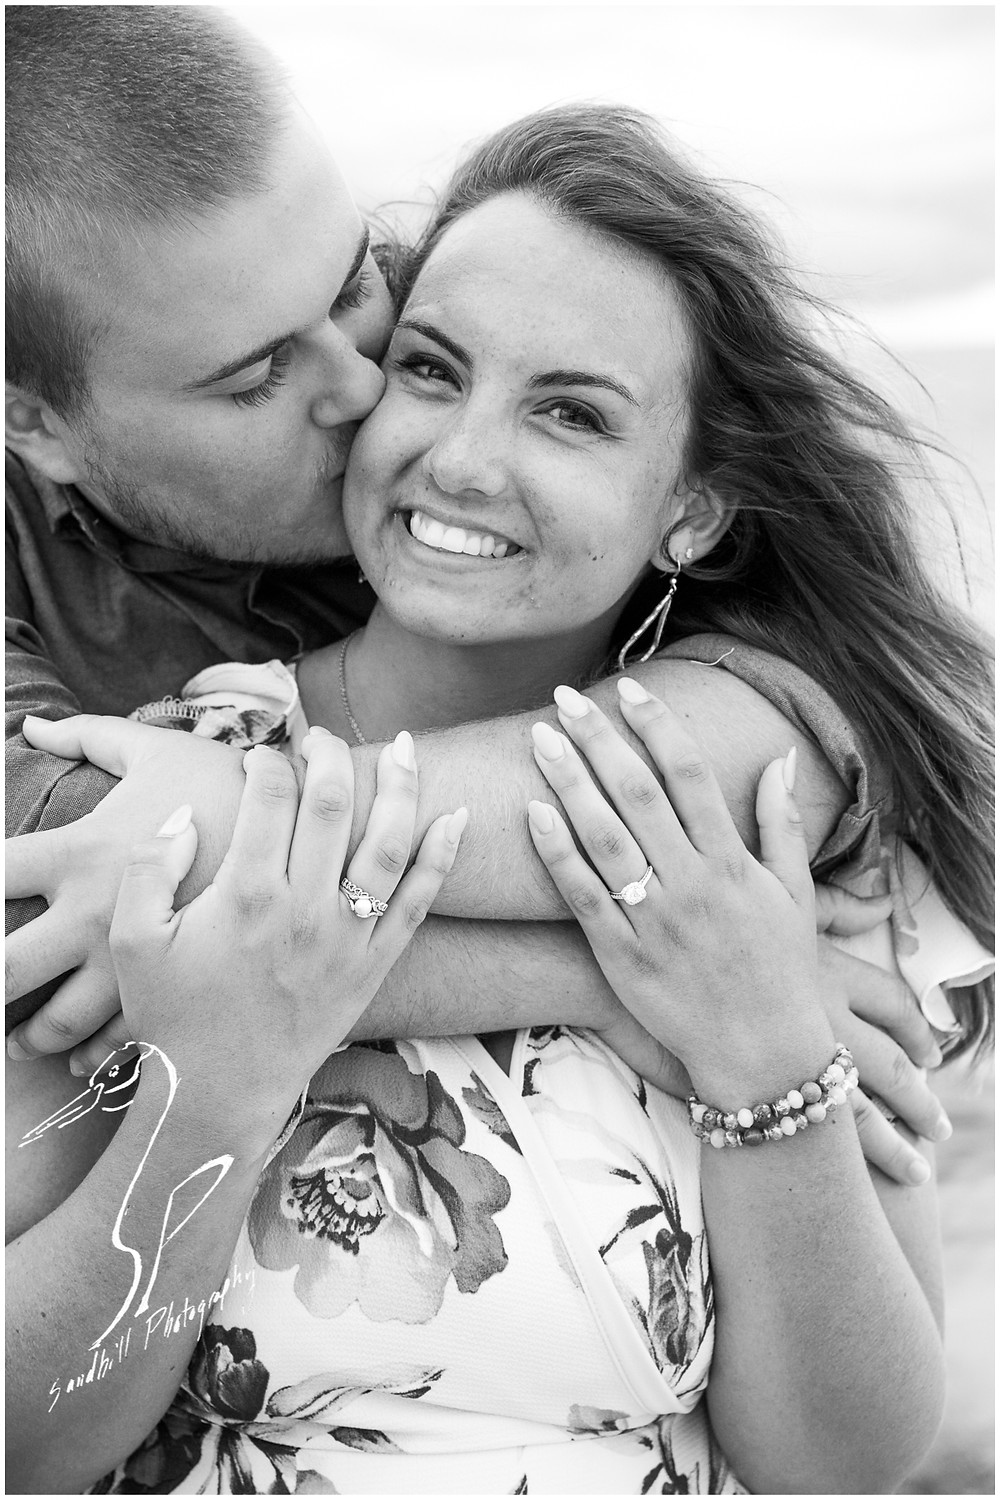 Bradenton Beach Engagement Photography, a man wraps his arms around his fiance's shoulders and kisses her while she smiles at the camera, black and white image by Sandhill Photography